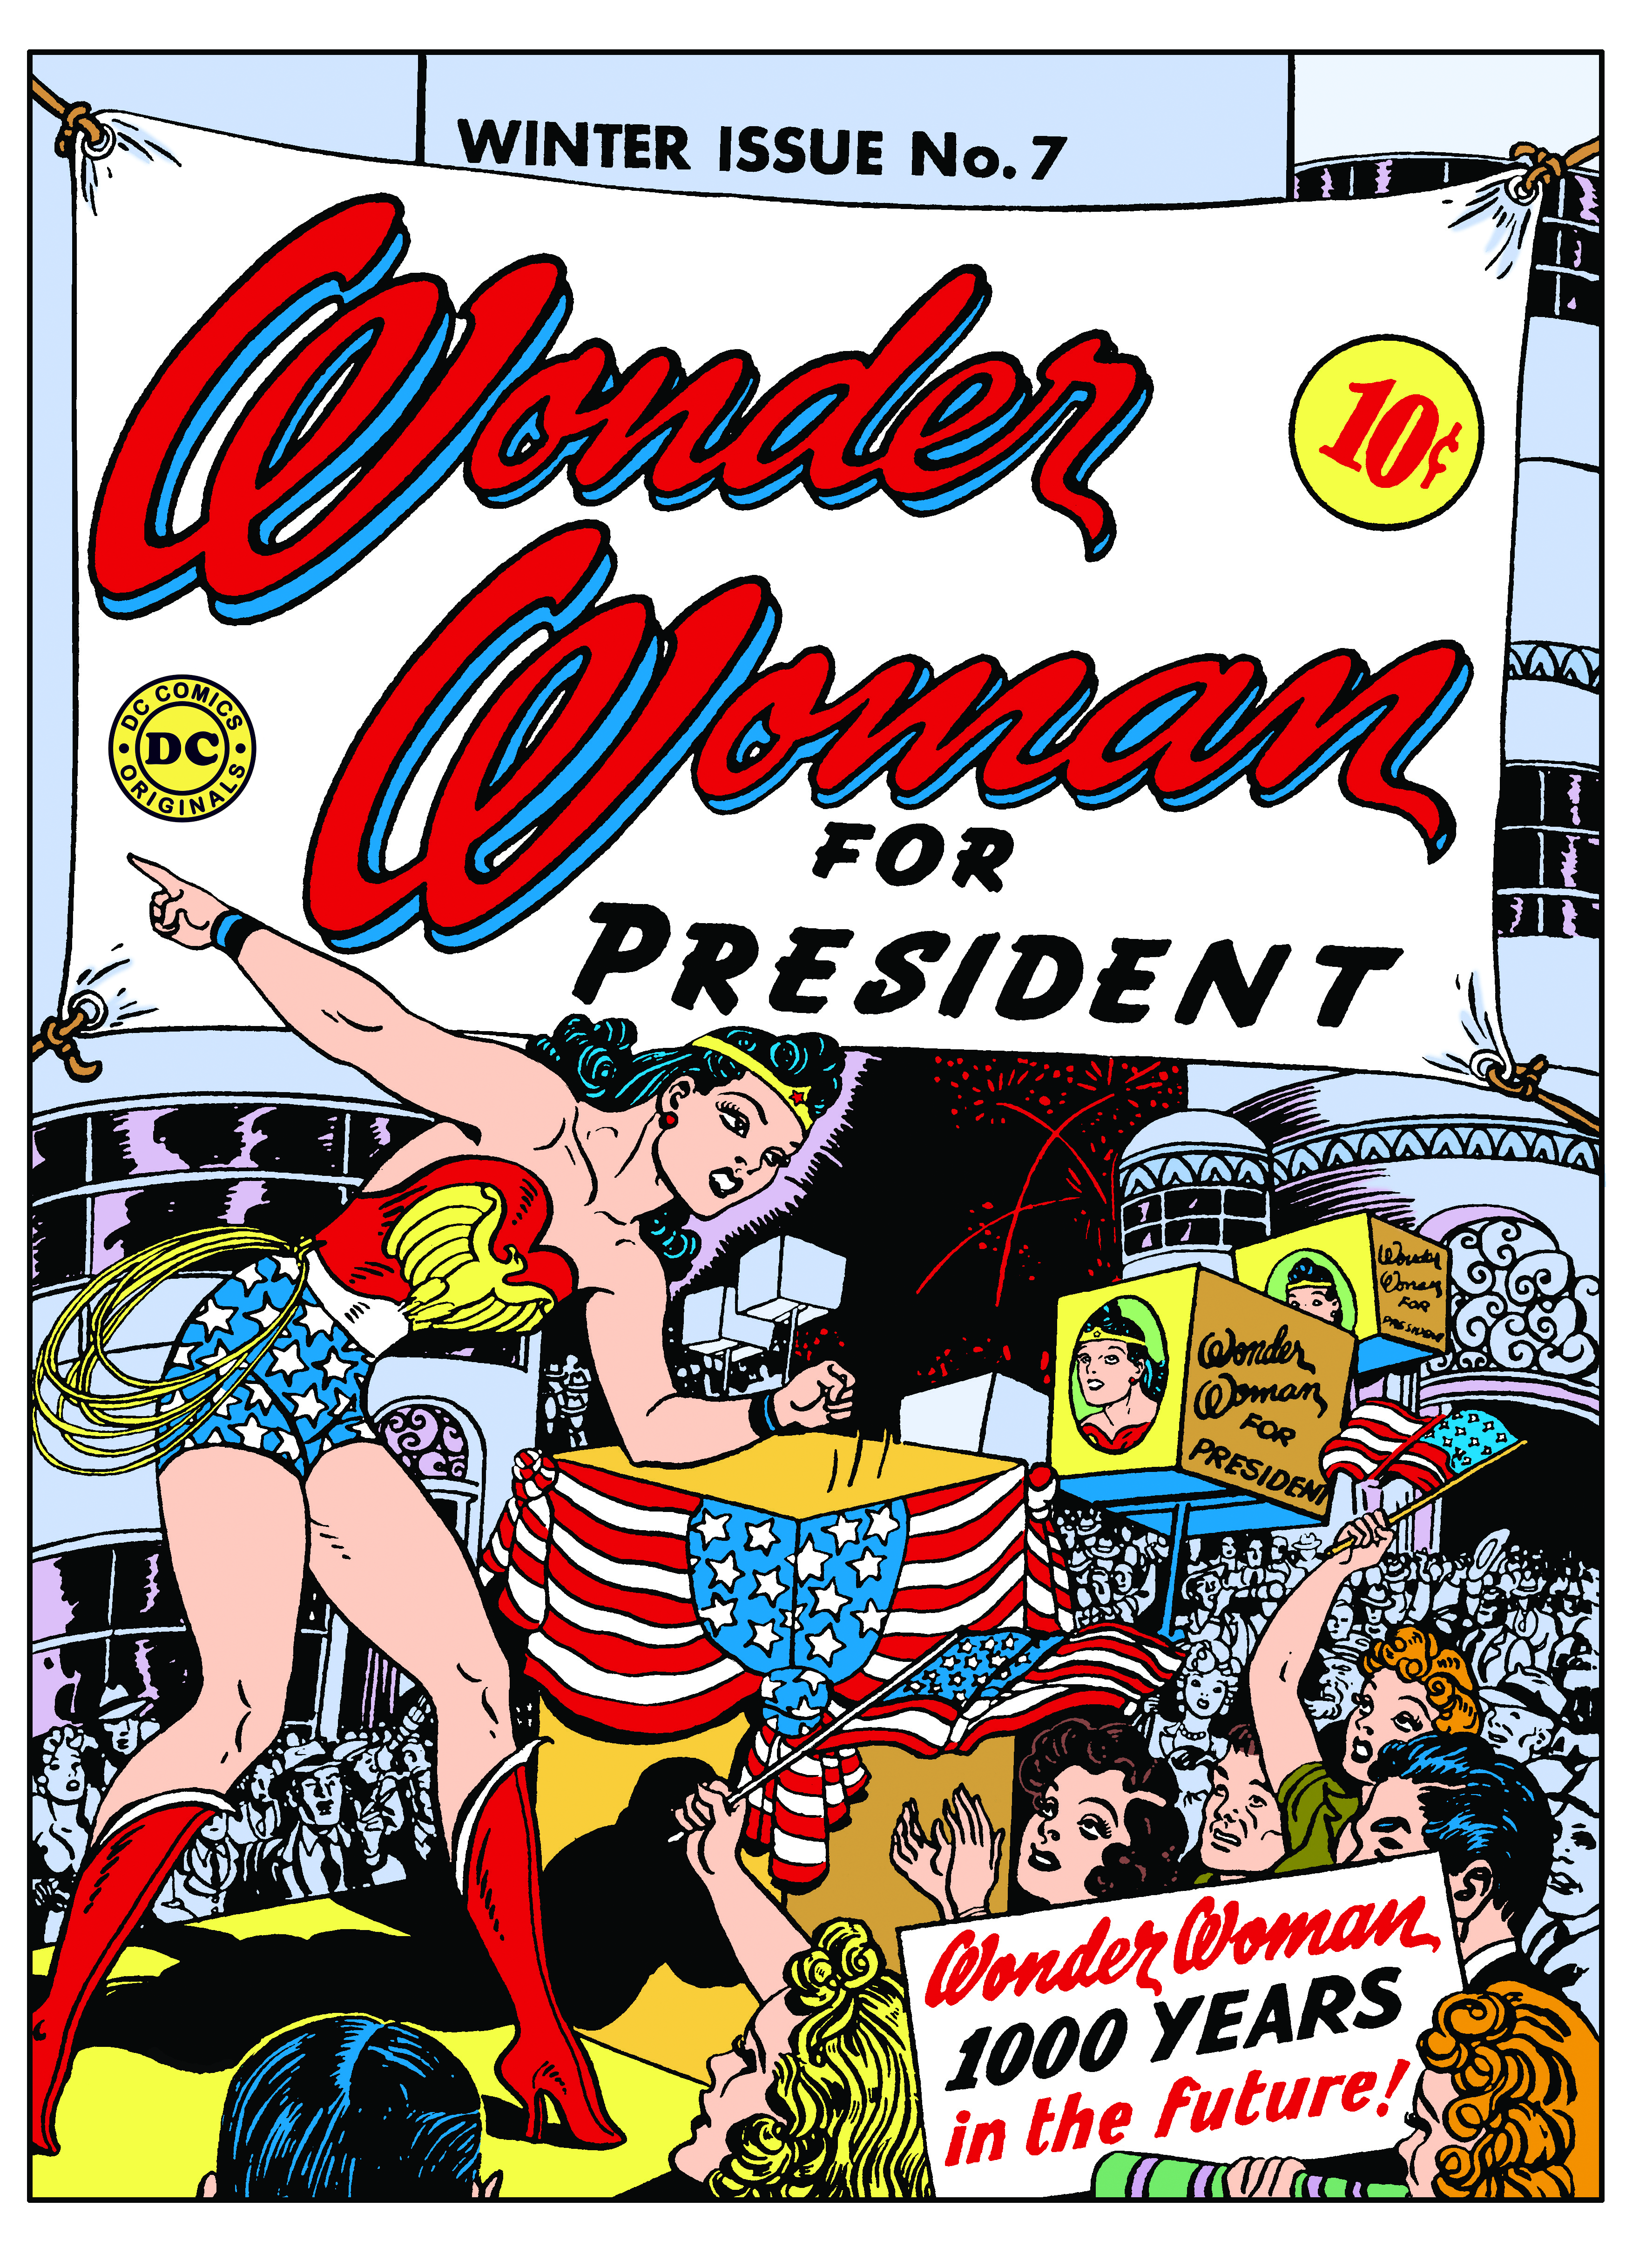 1943: In this comic, Wonder Woman foresees the future. She runs for president against her love interest Steve and the Man's World Party—and wins.